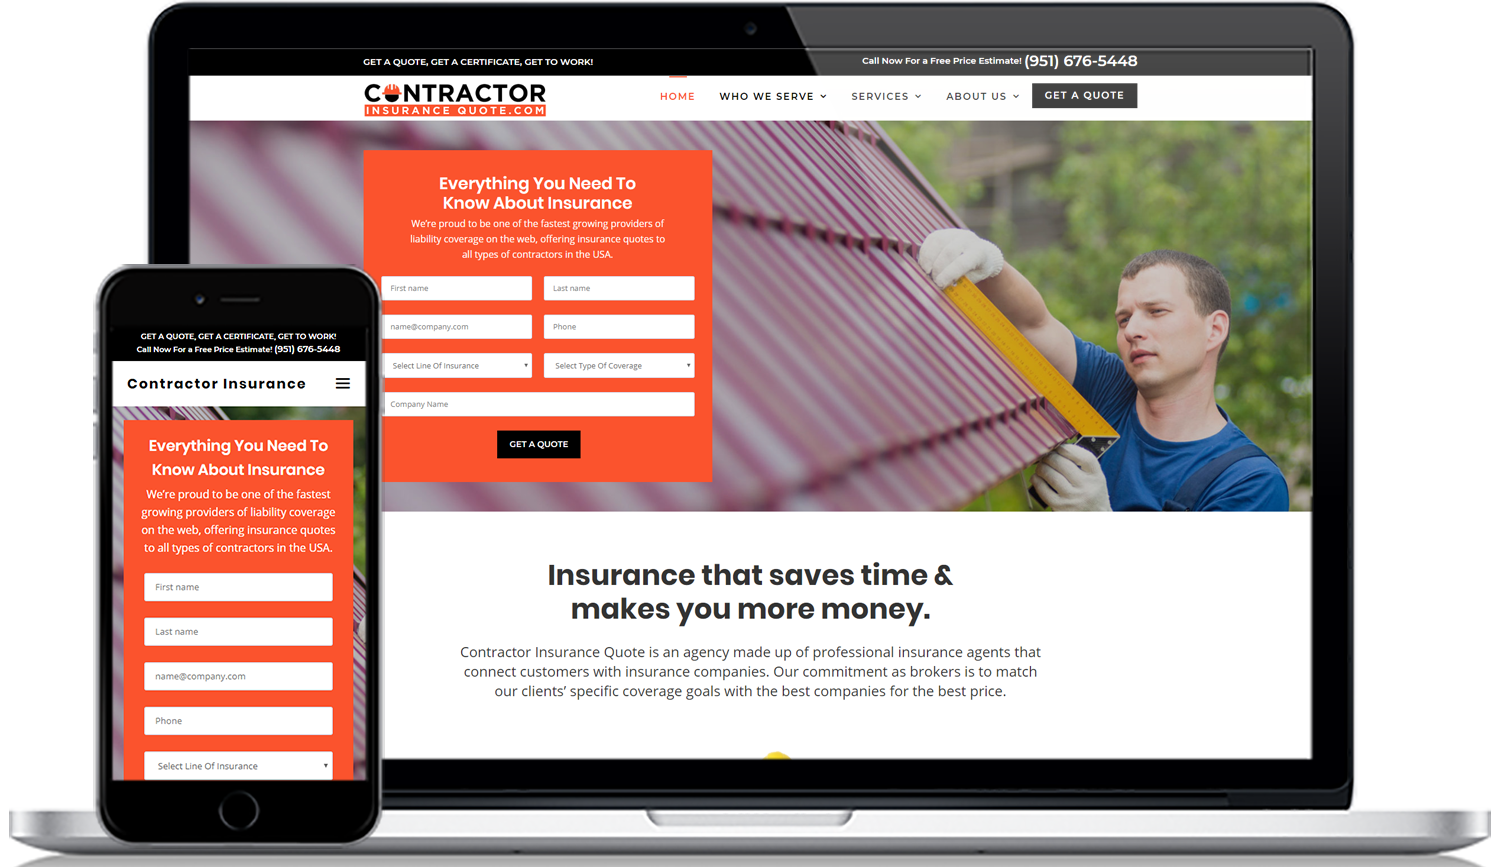 contractorinsurancequote.com website design